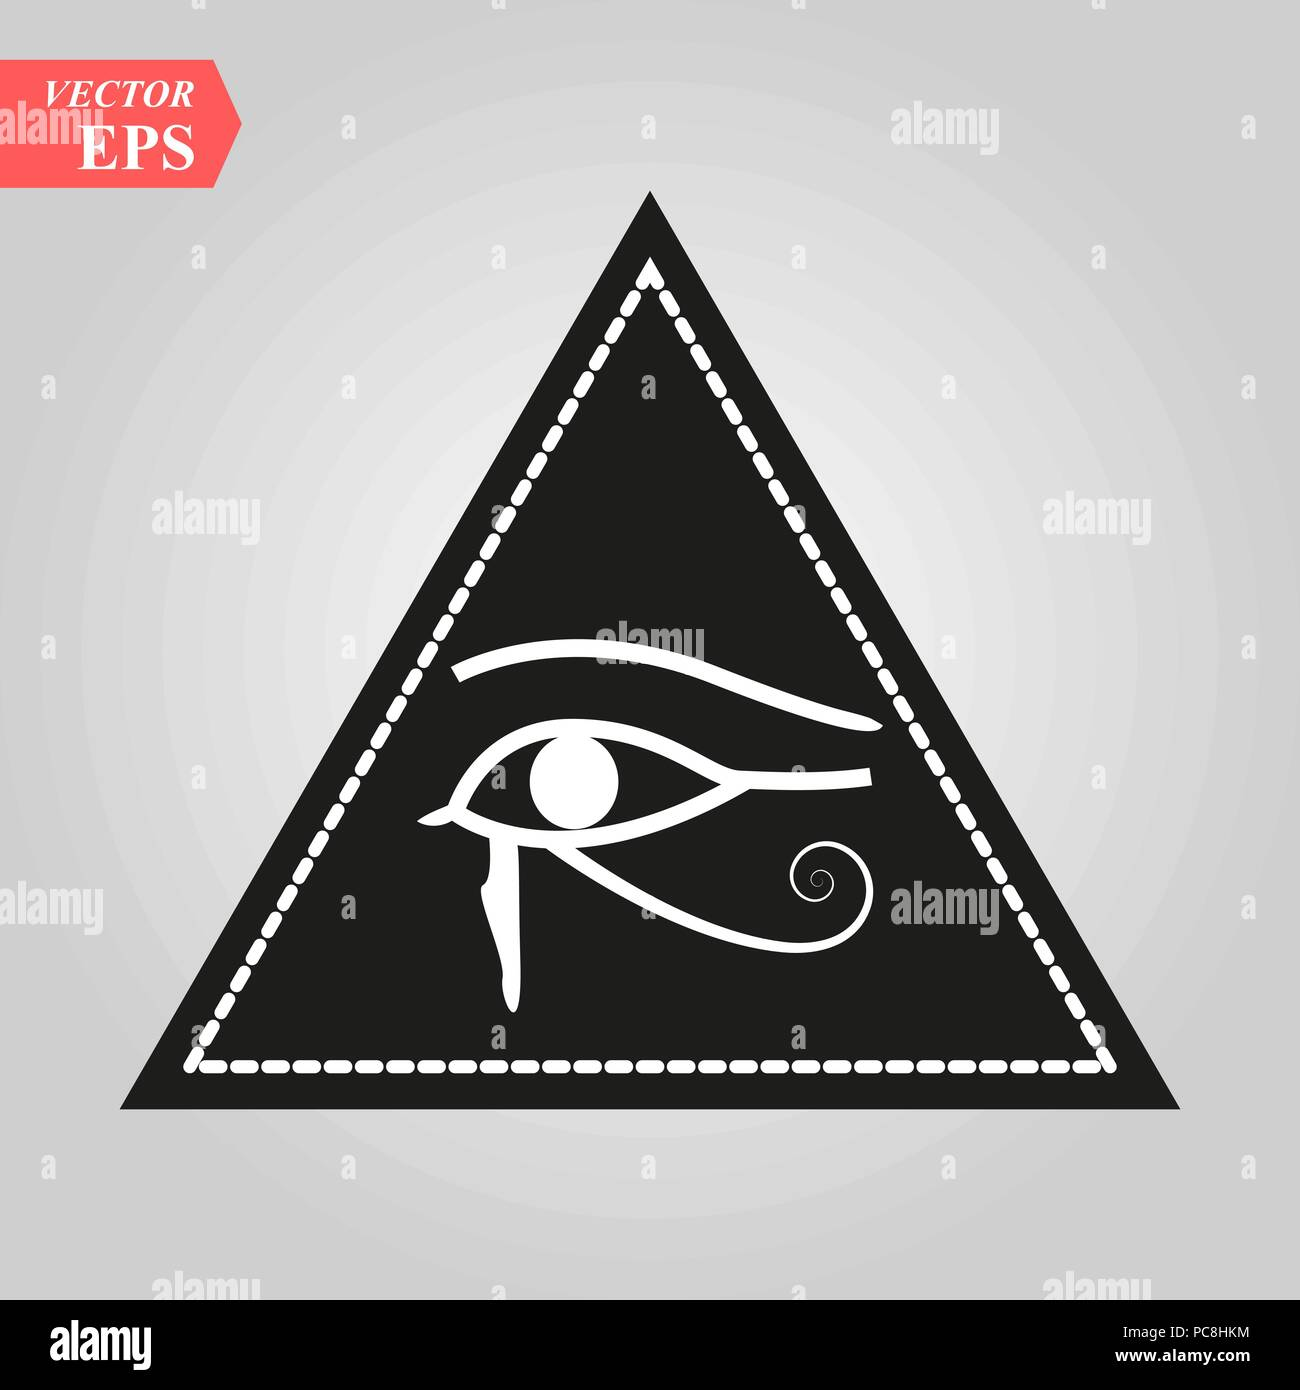 All Seeing Eye Magical Element Eye Triangle Tattoo Design Vector Illustration Eps10 Stock Vector Image Art Alamy,Baja Designs Squadron Sport Tacoma